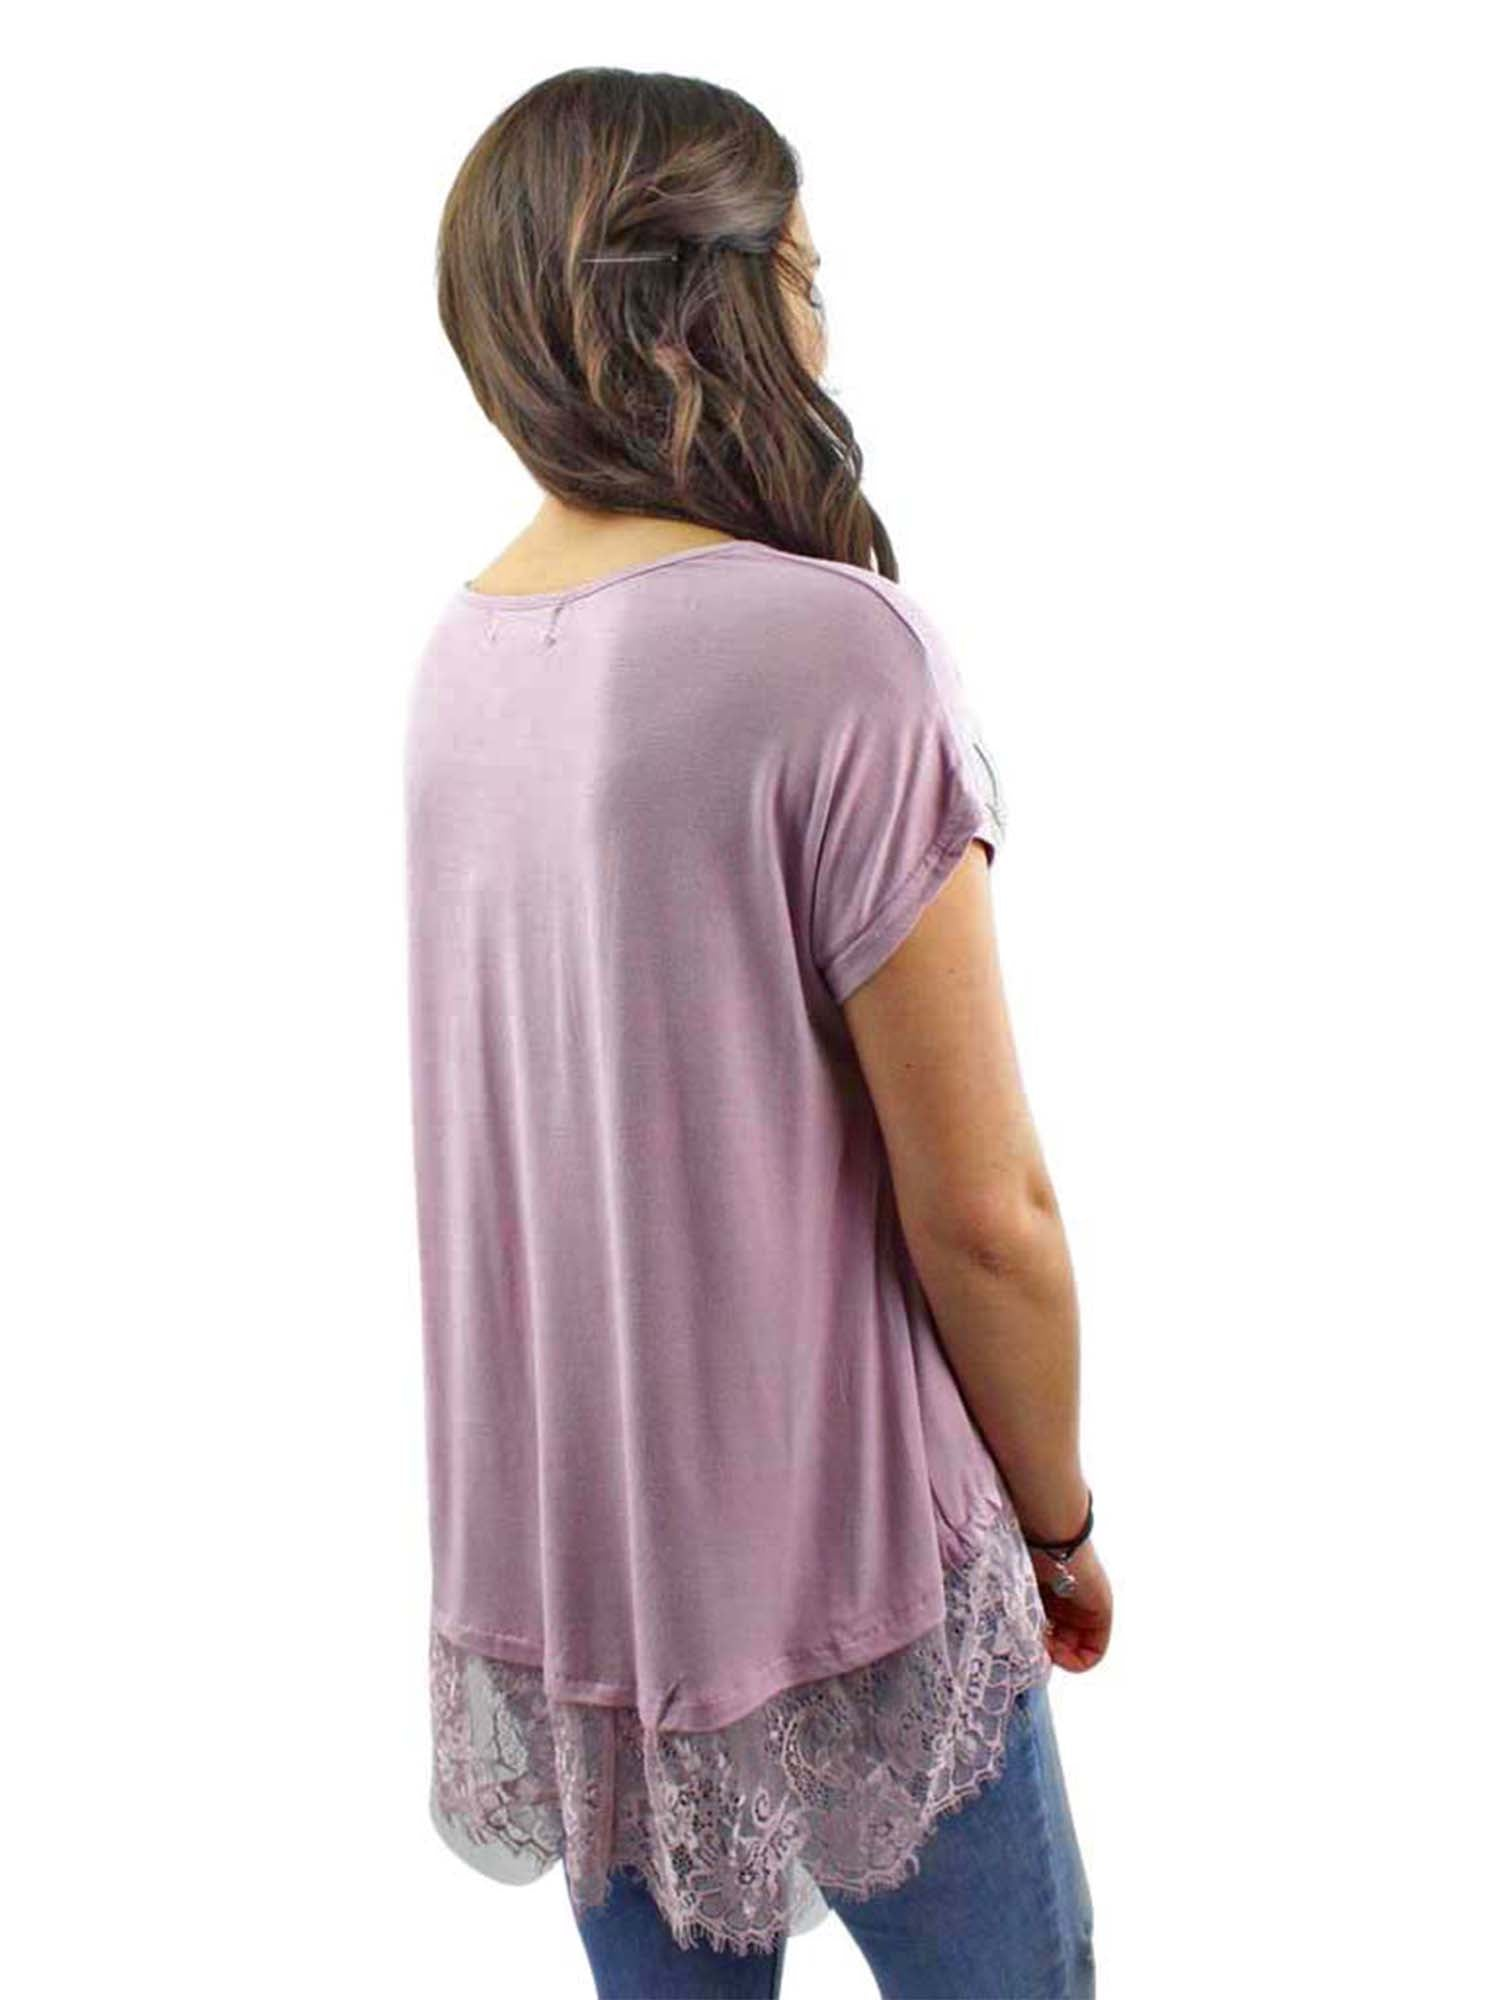 Mauve Top With Lace Trim